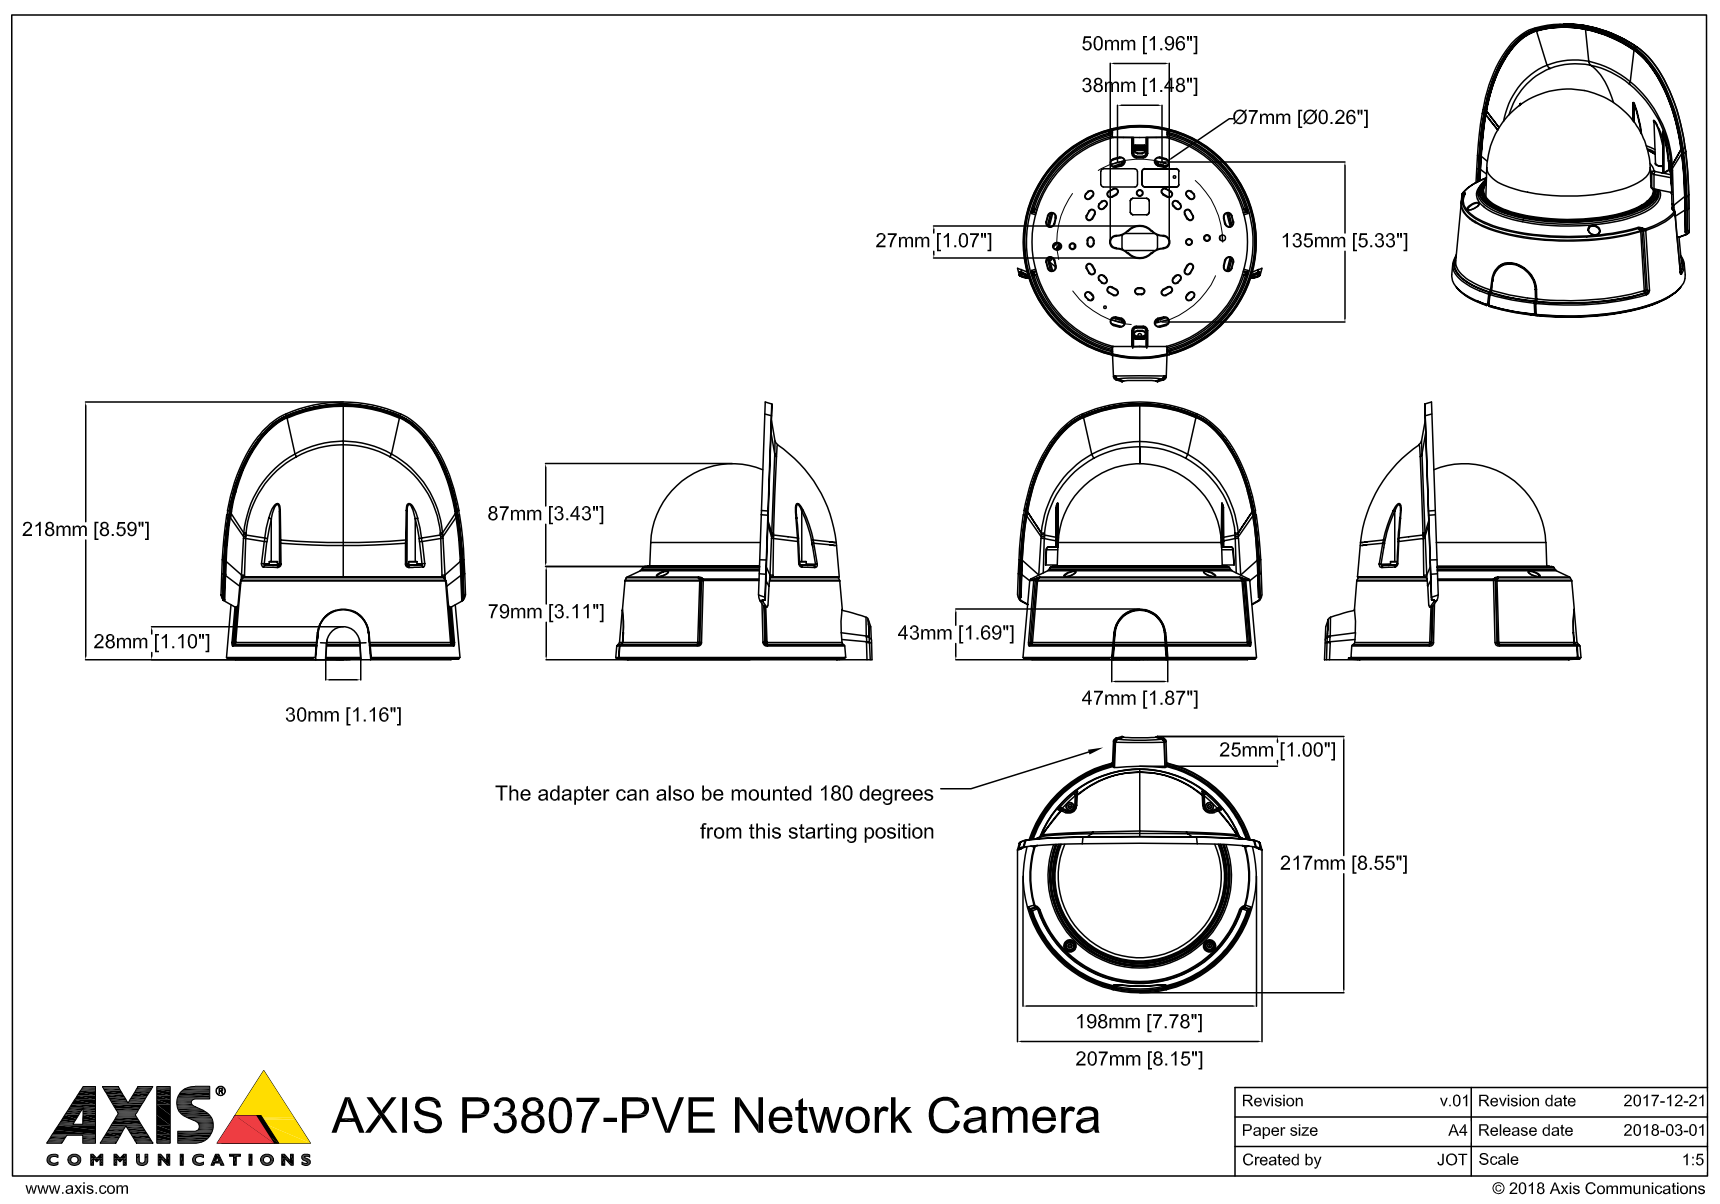 Axis P3807-PVE Dimensions